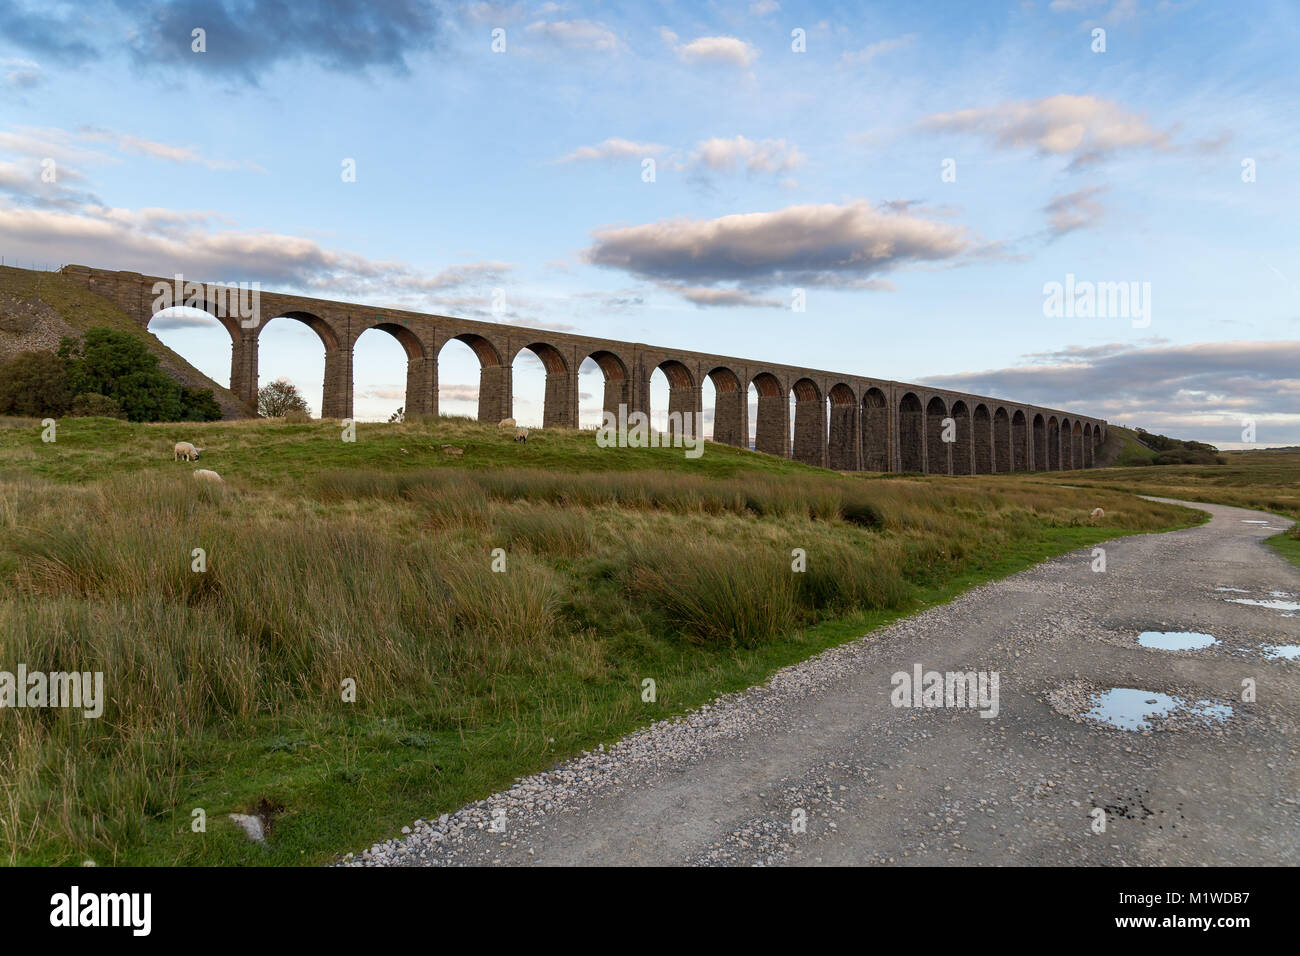 The Ribblehead Viaduct on the Settle-Carlisle Railway, near Ingleton in the Yorkshire Dales, North Yorkshire, UK - Stock Image